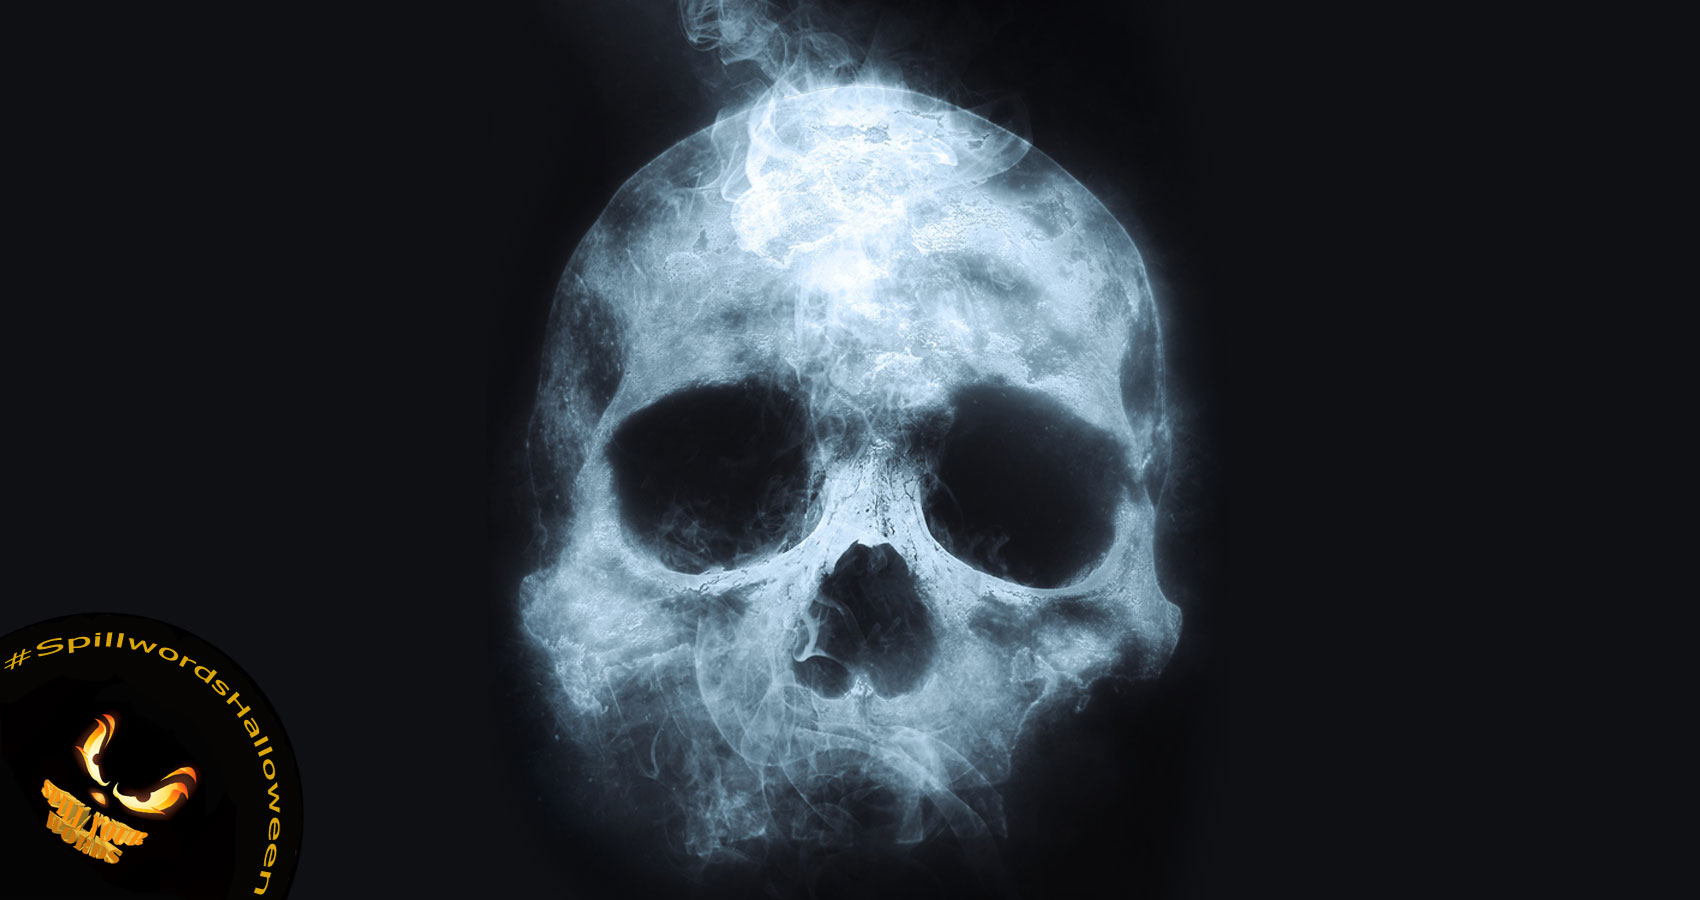 Skulled, a short story written by Debbie Aruta at Spillwords.com